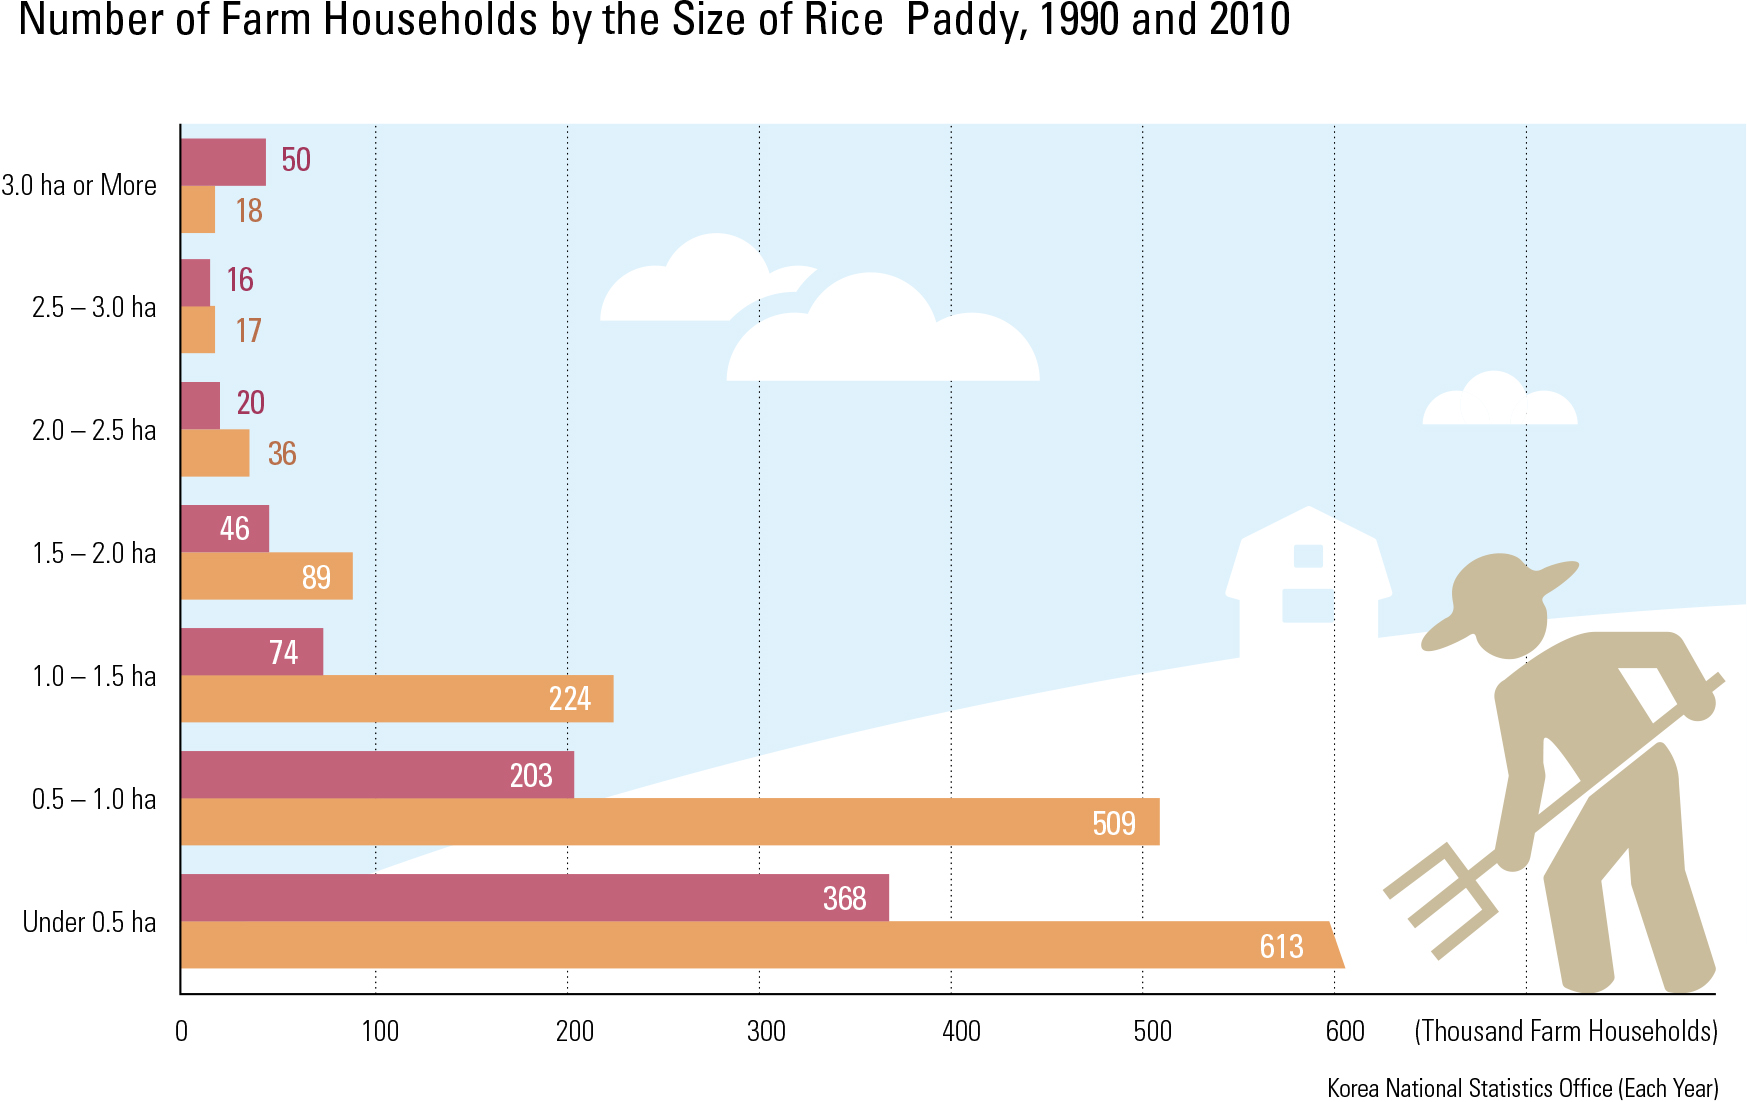 Number of Farm Households by the Size of Rice Paddy, 1990 and 2010